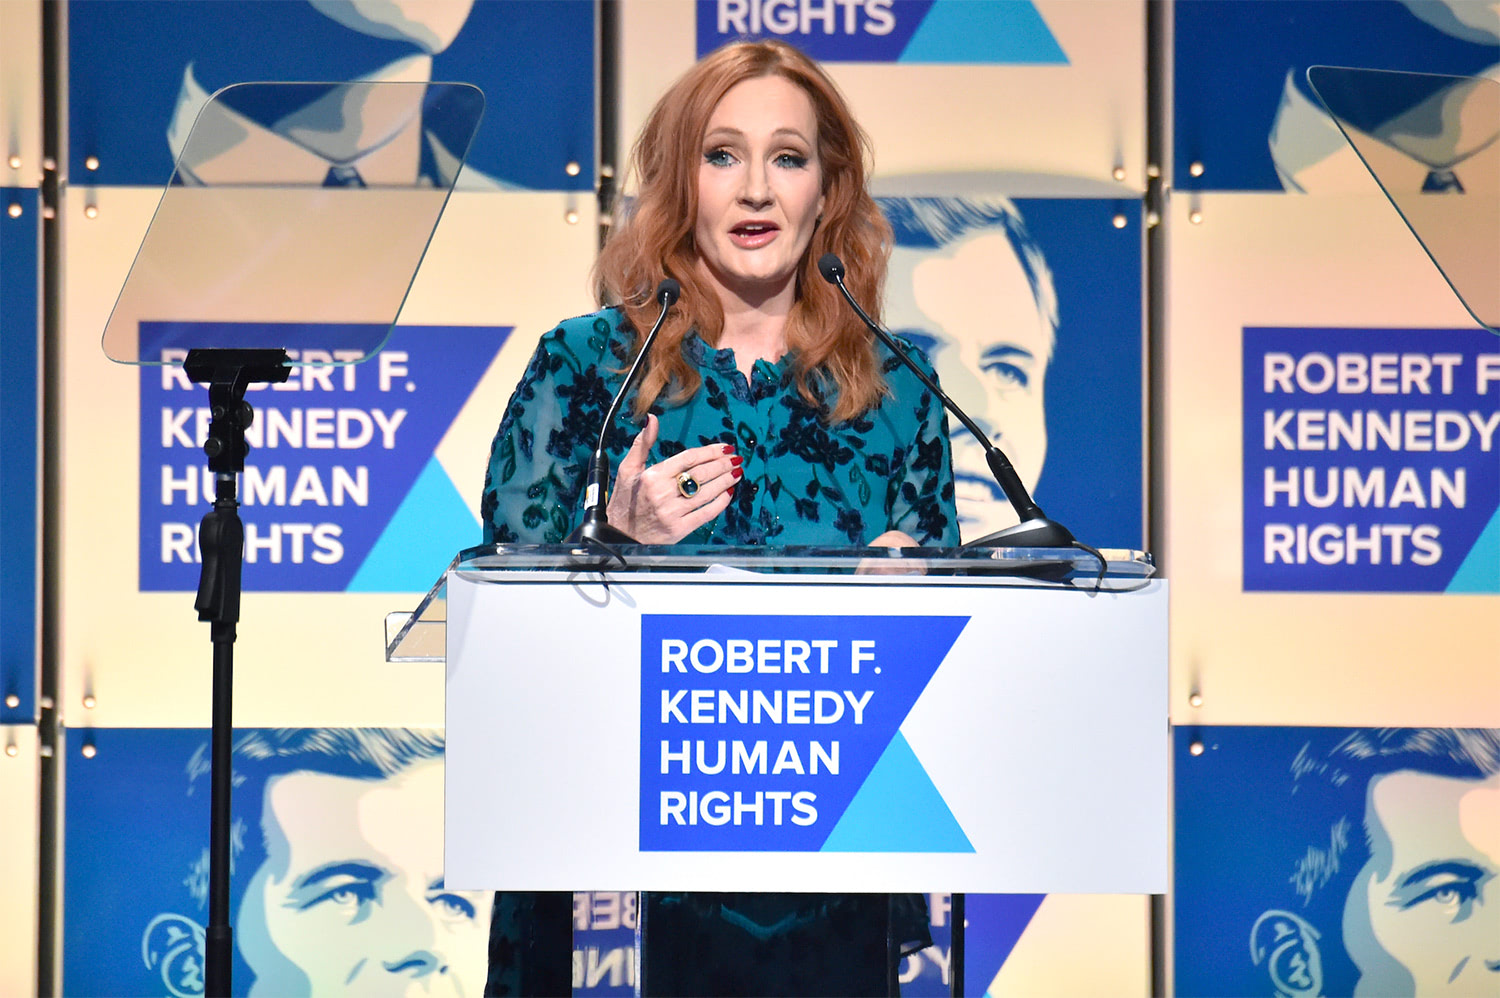 J.K. Rowling wins Ripple of Hope award